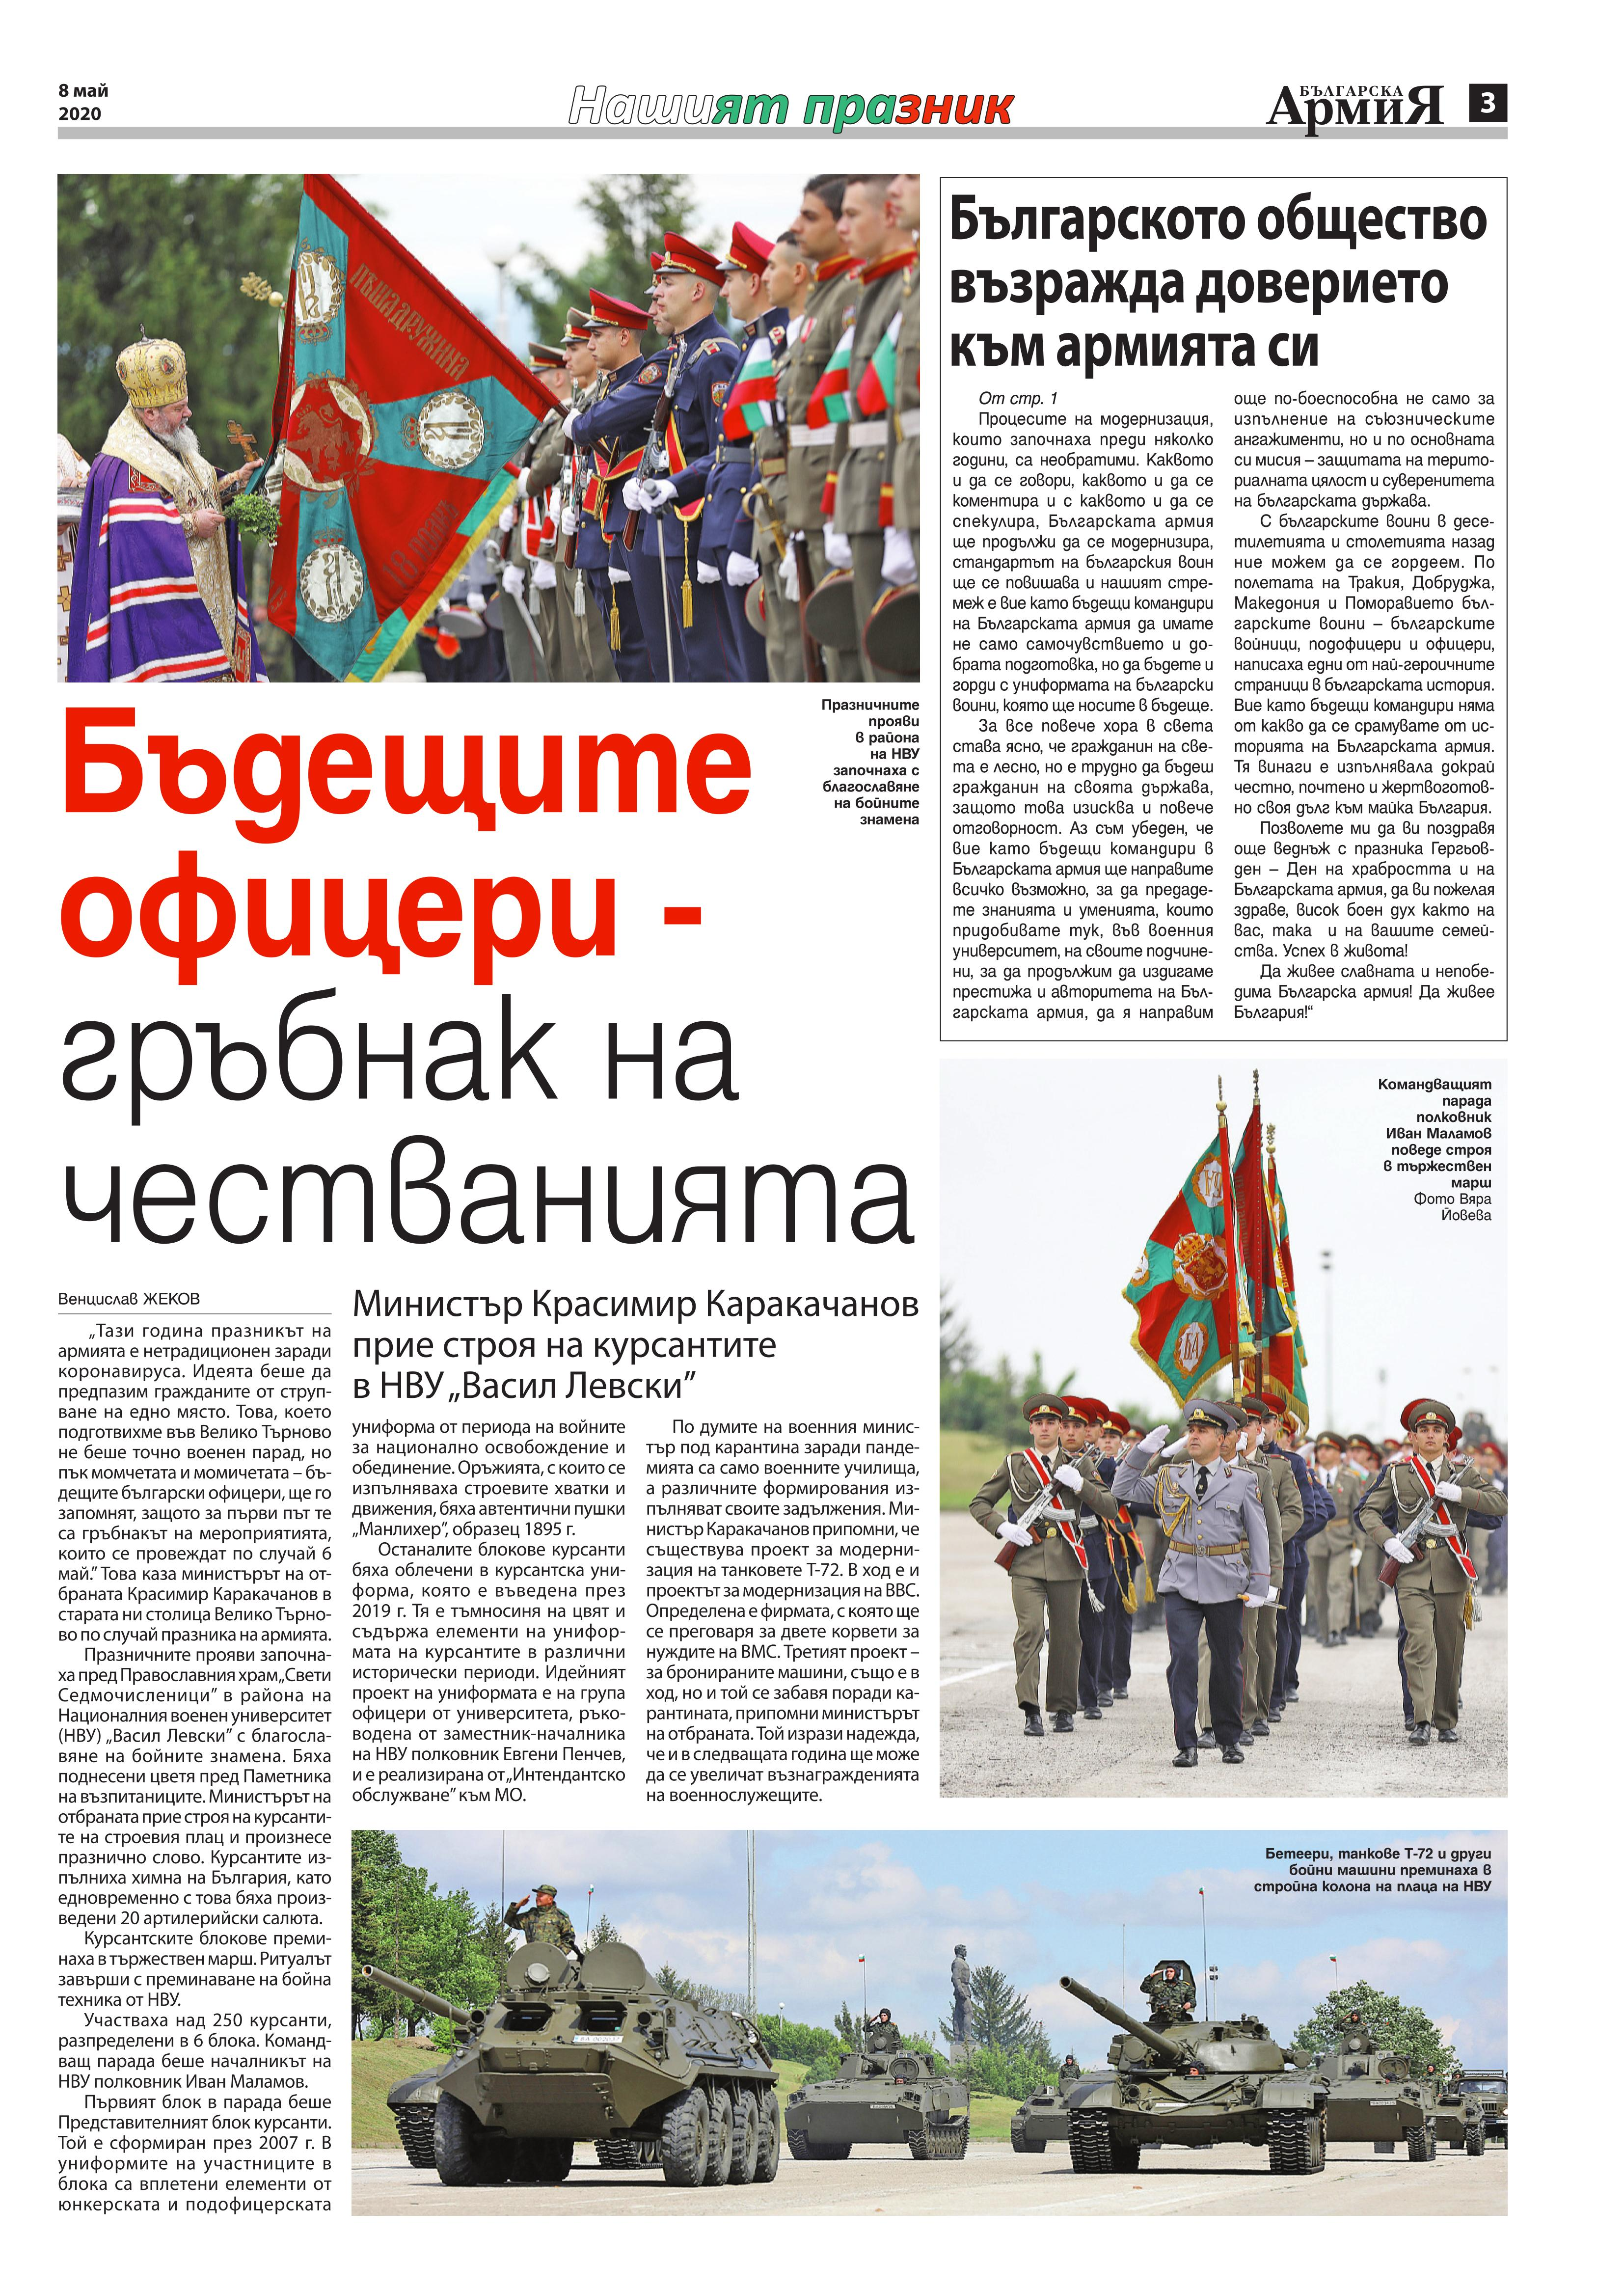 https://armymedia.bg/wp-content/uploads/2015/06/03.page1_-135.jpg